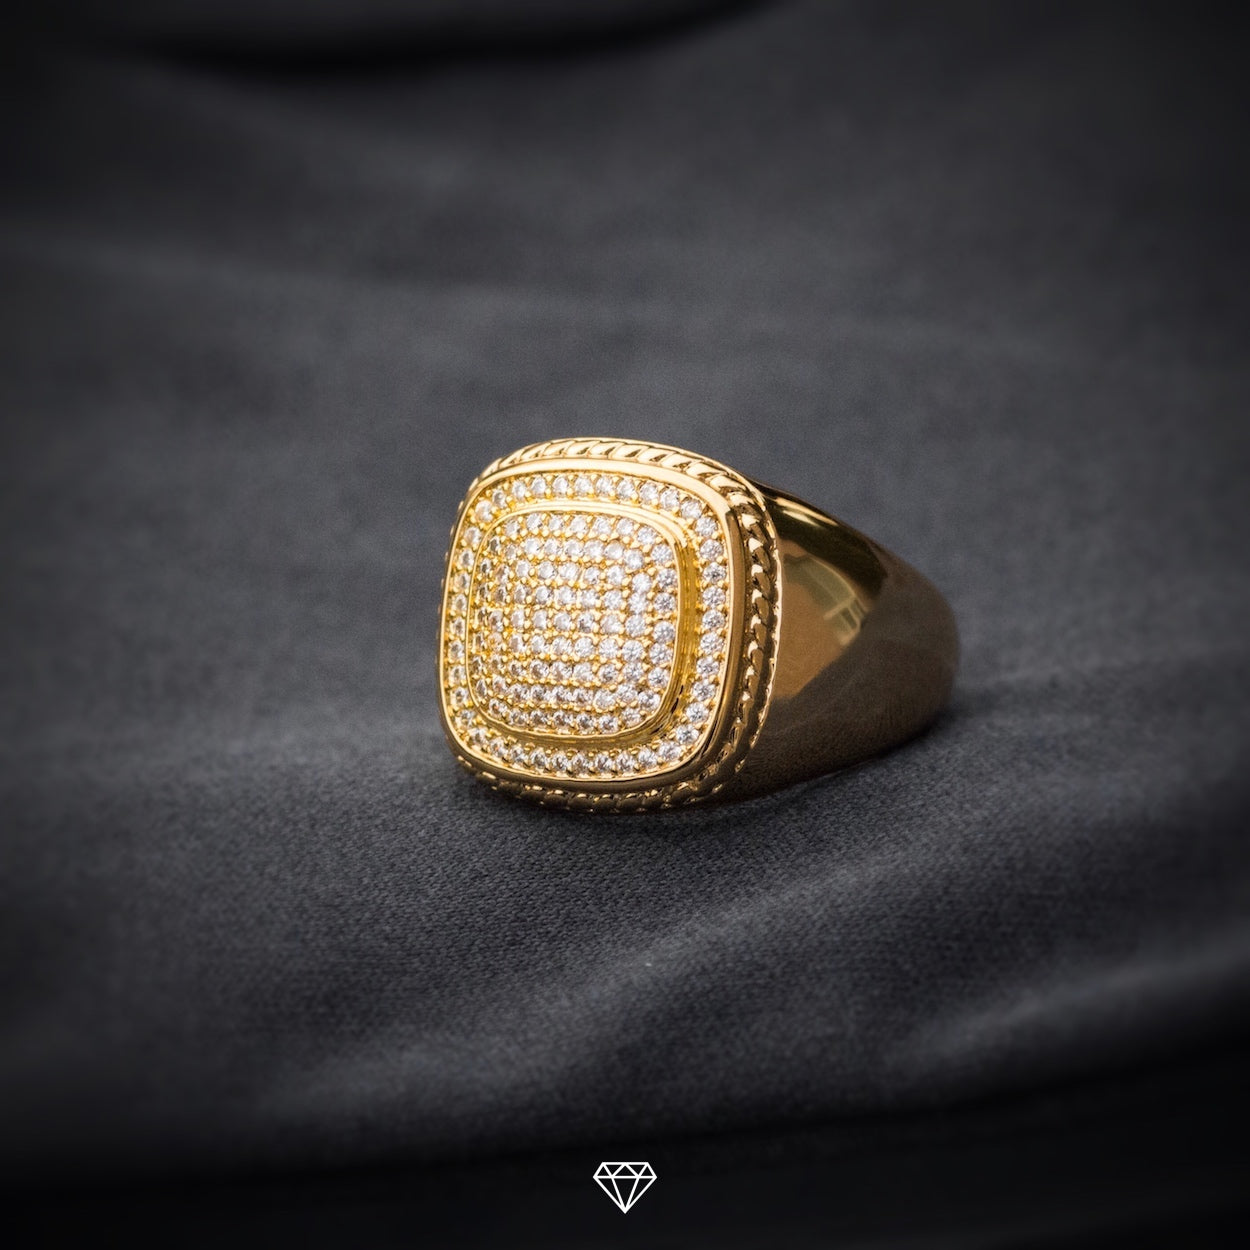 GCS Yellow Gold Iced Diamond Ring